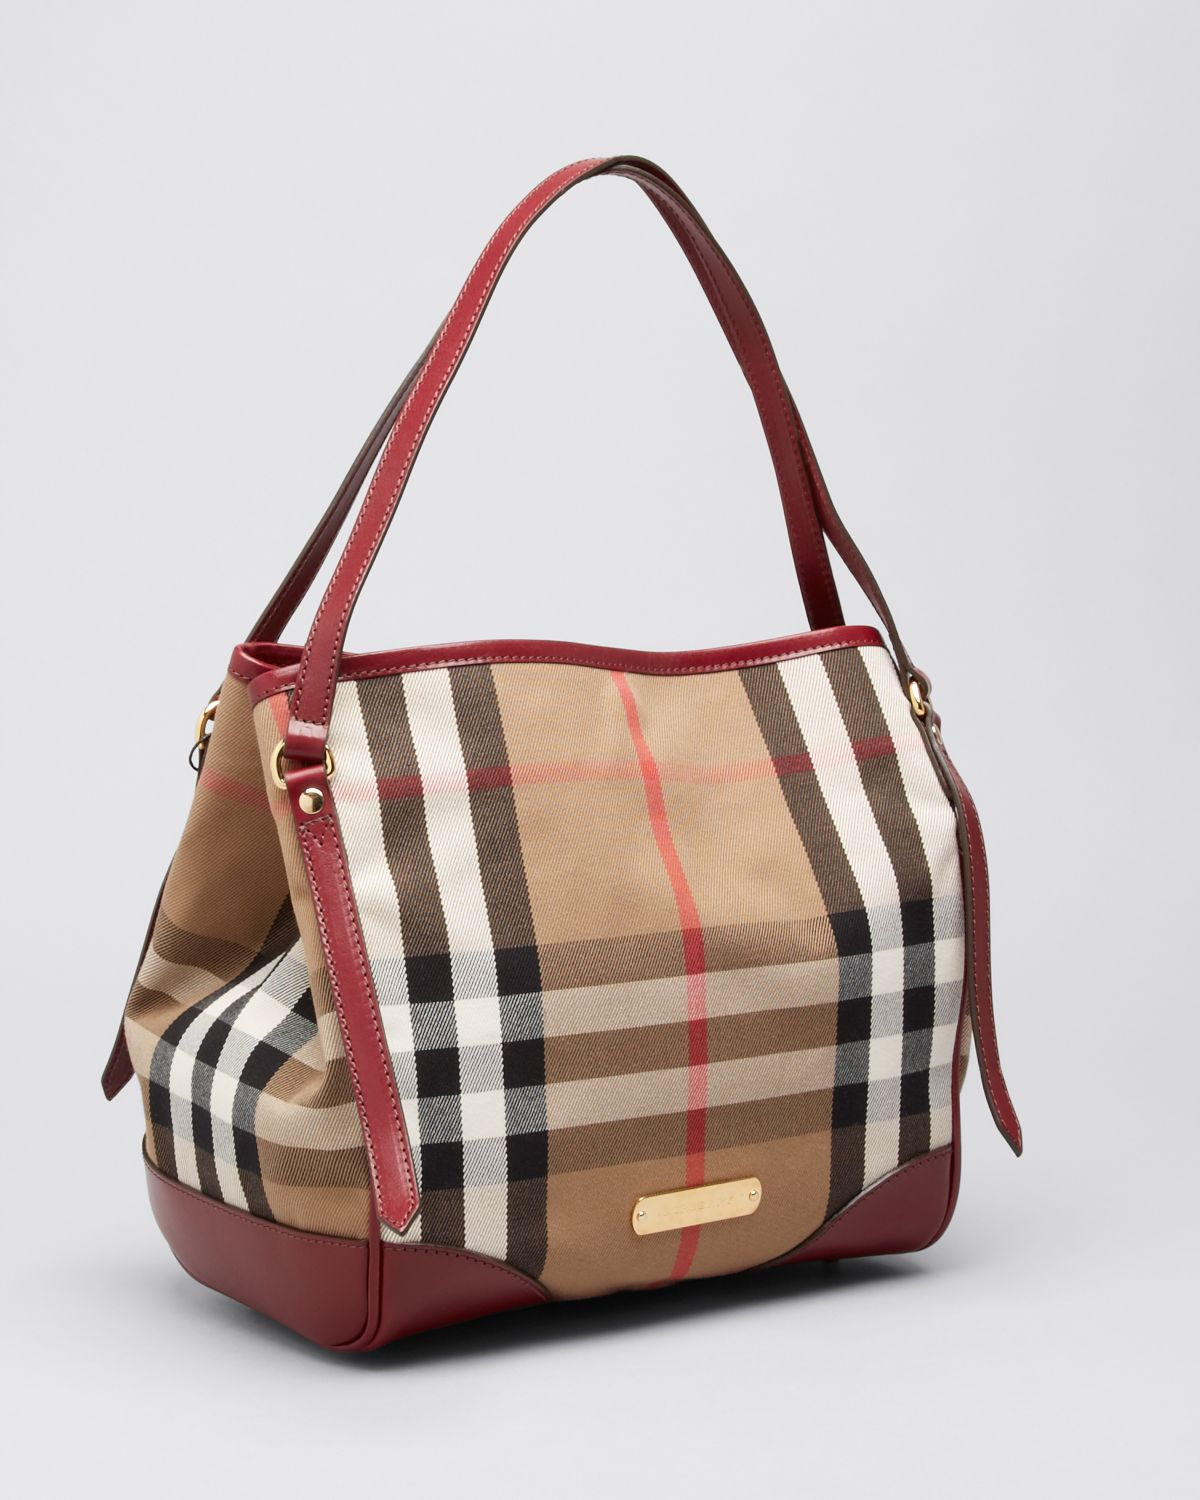 9698e134001 Gallery. Previously sold at: Bloomingdale's · Women's Burberry House